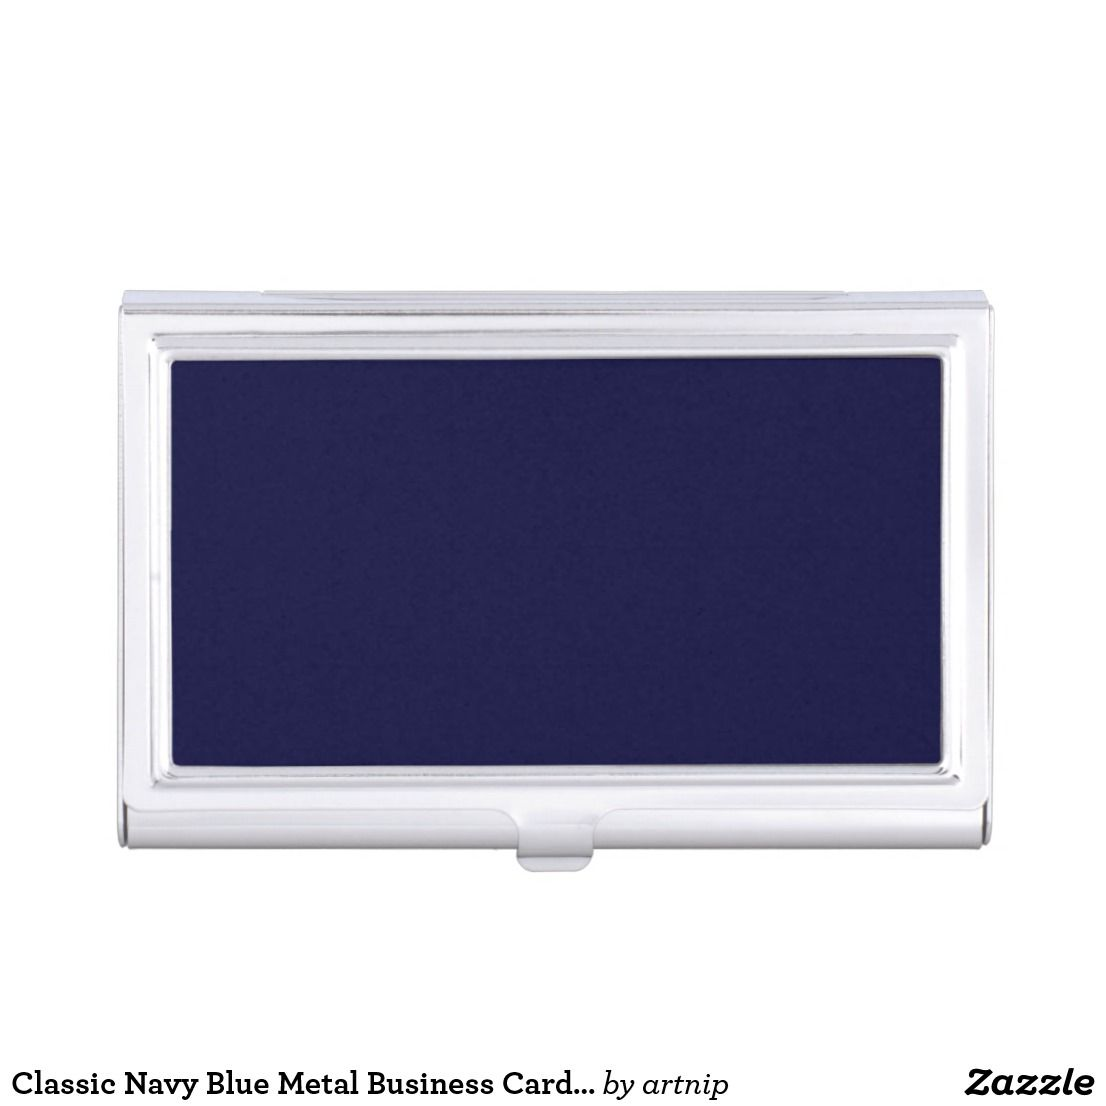 Classic navy blue metal business card case business card case and classic navy blue metal business card case colourmoves